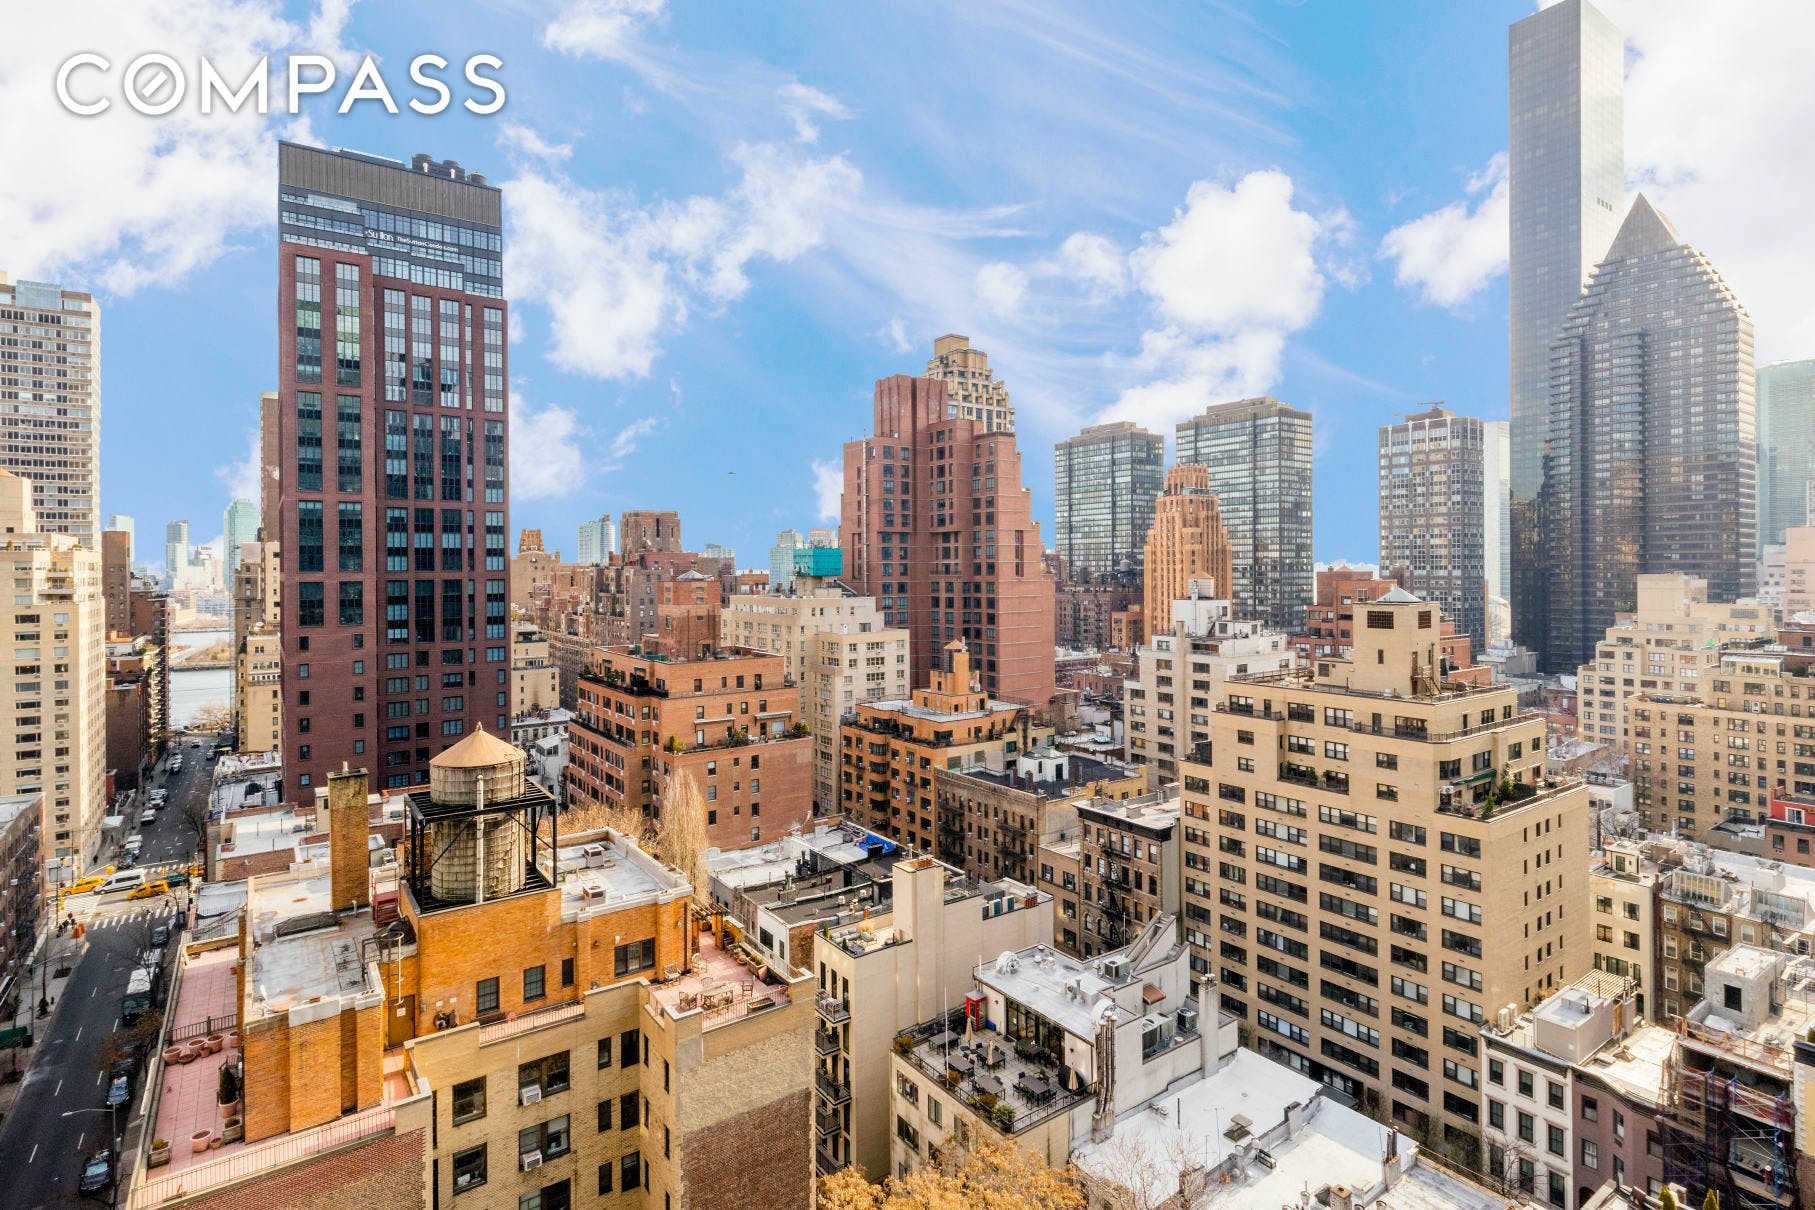 primary photo for 310 East 53rd Street 17-A, New York, NY 10022, US